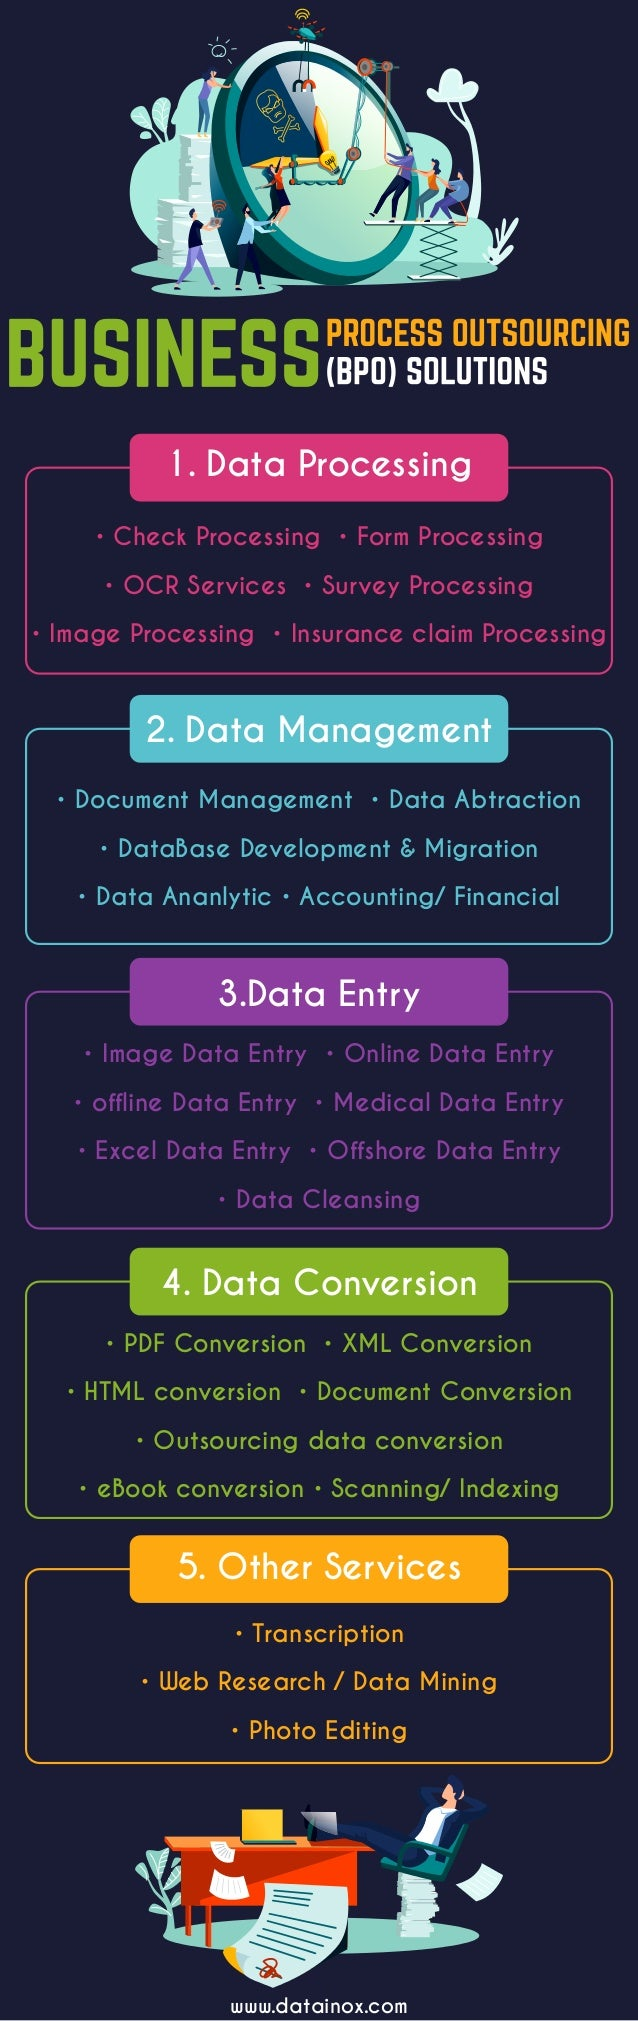 1. Data Processing 2. Data Management 3.Data Entry 4. Data Conversion 5. Other Services www.datainox.com • Check Processin...